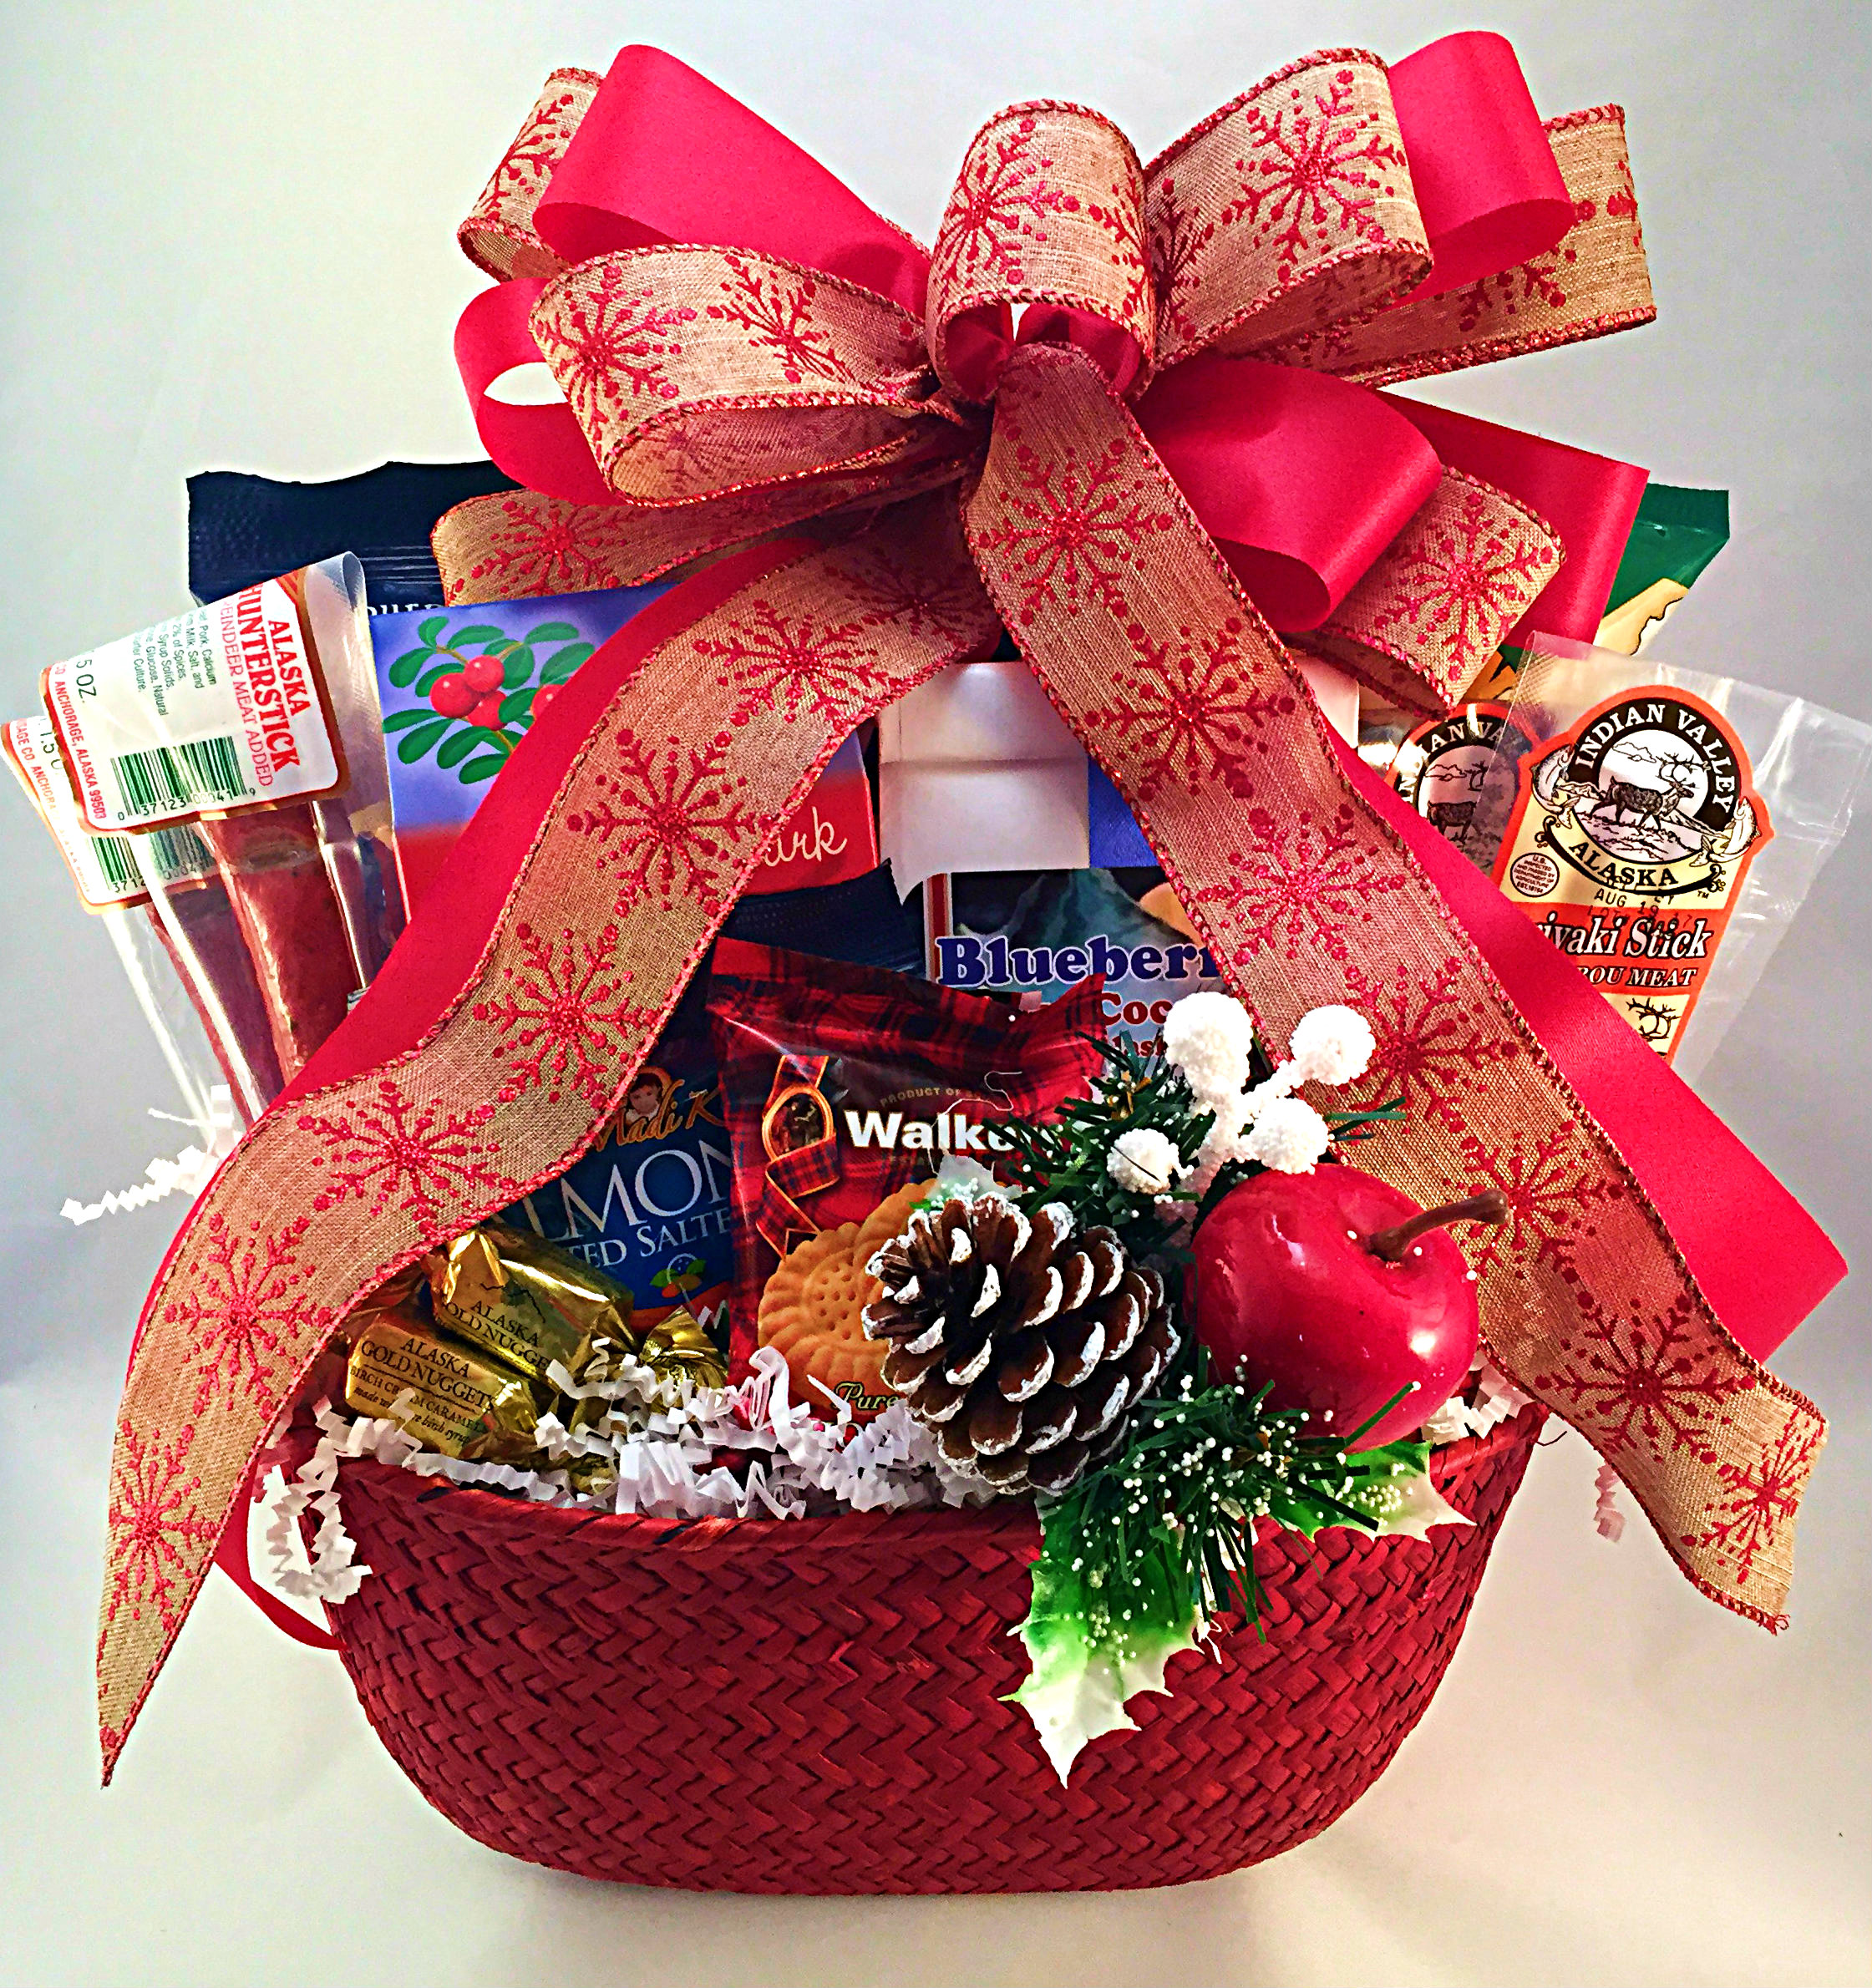 The North Pole Alaskan Gift Basket